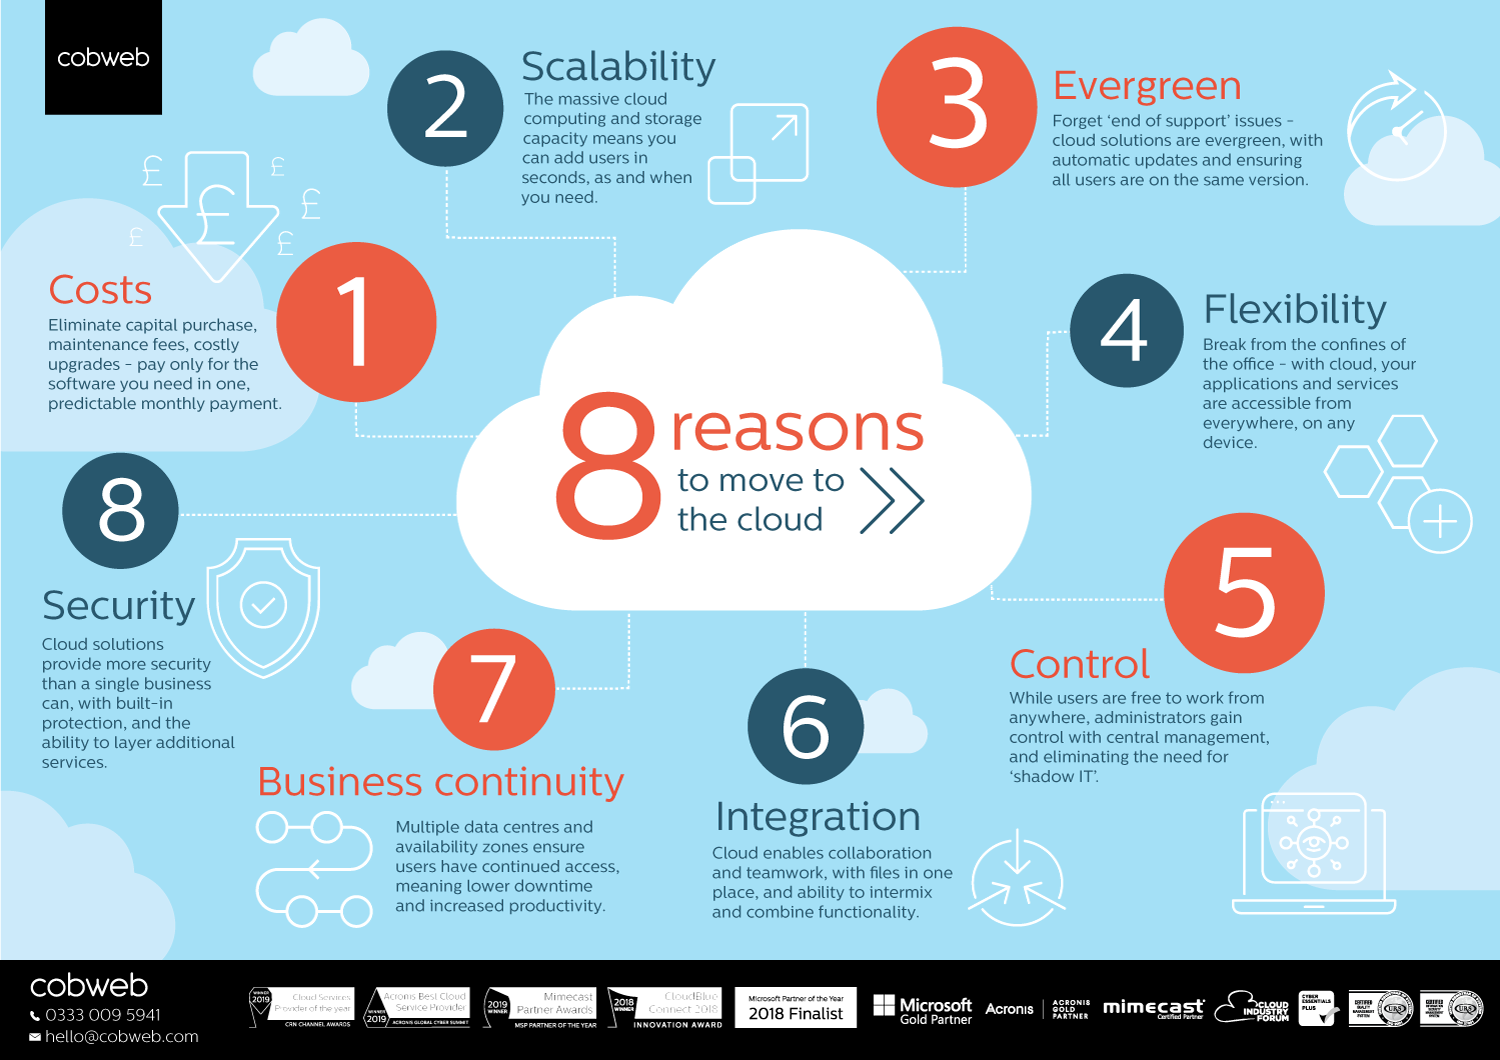 8 reasons why the cloud is best